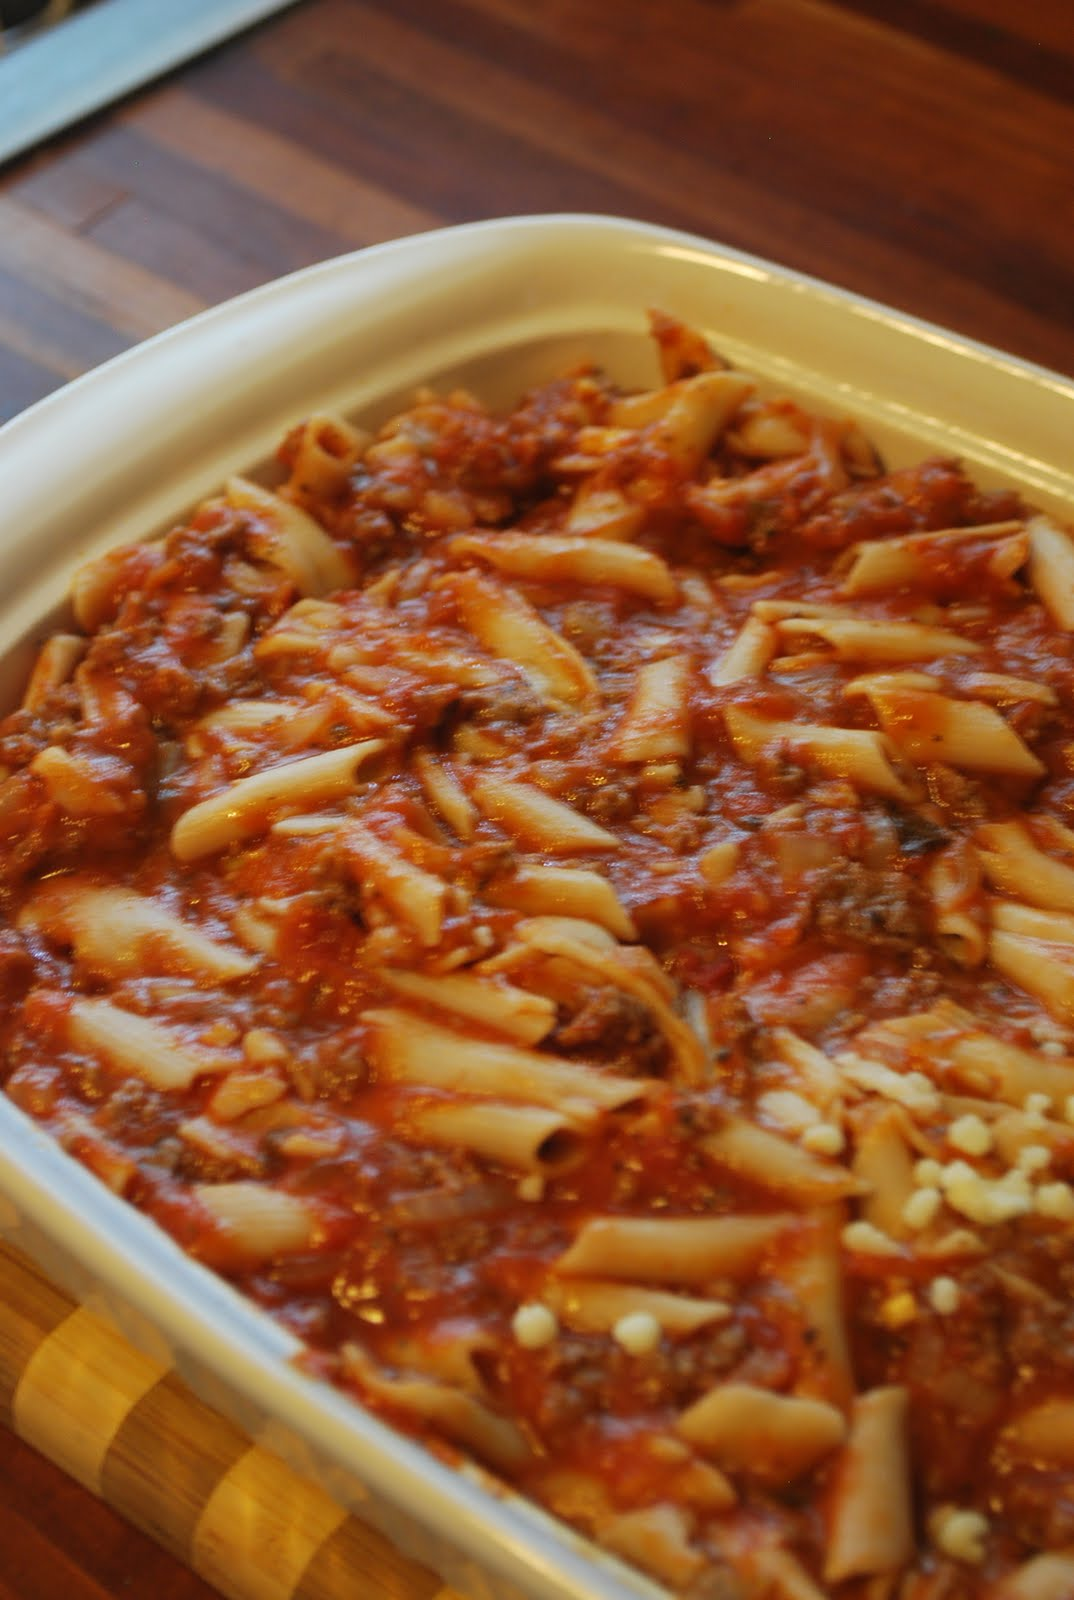 candida and food: baked ziti - you can cook pasta and eat